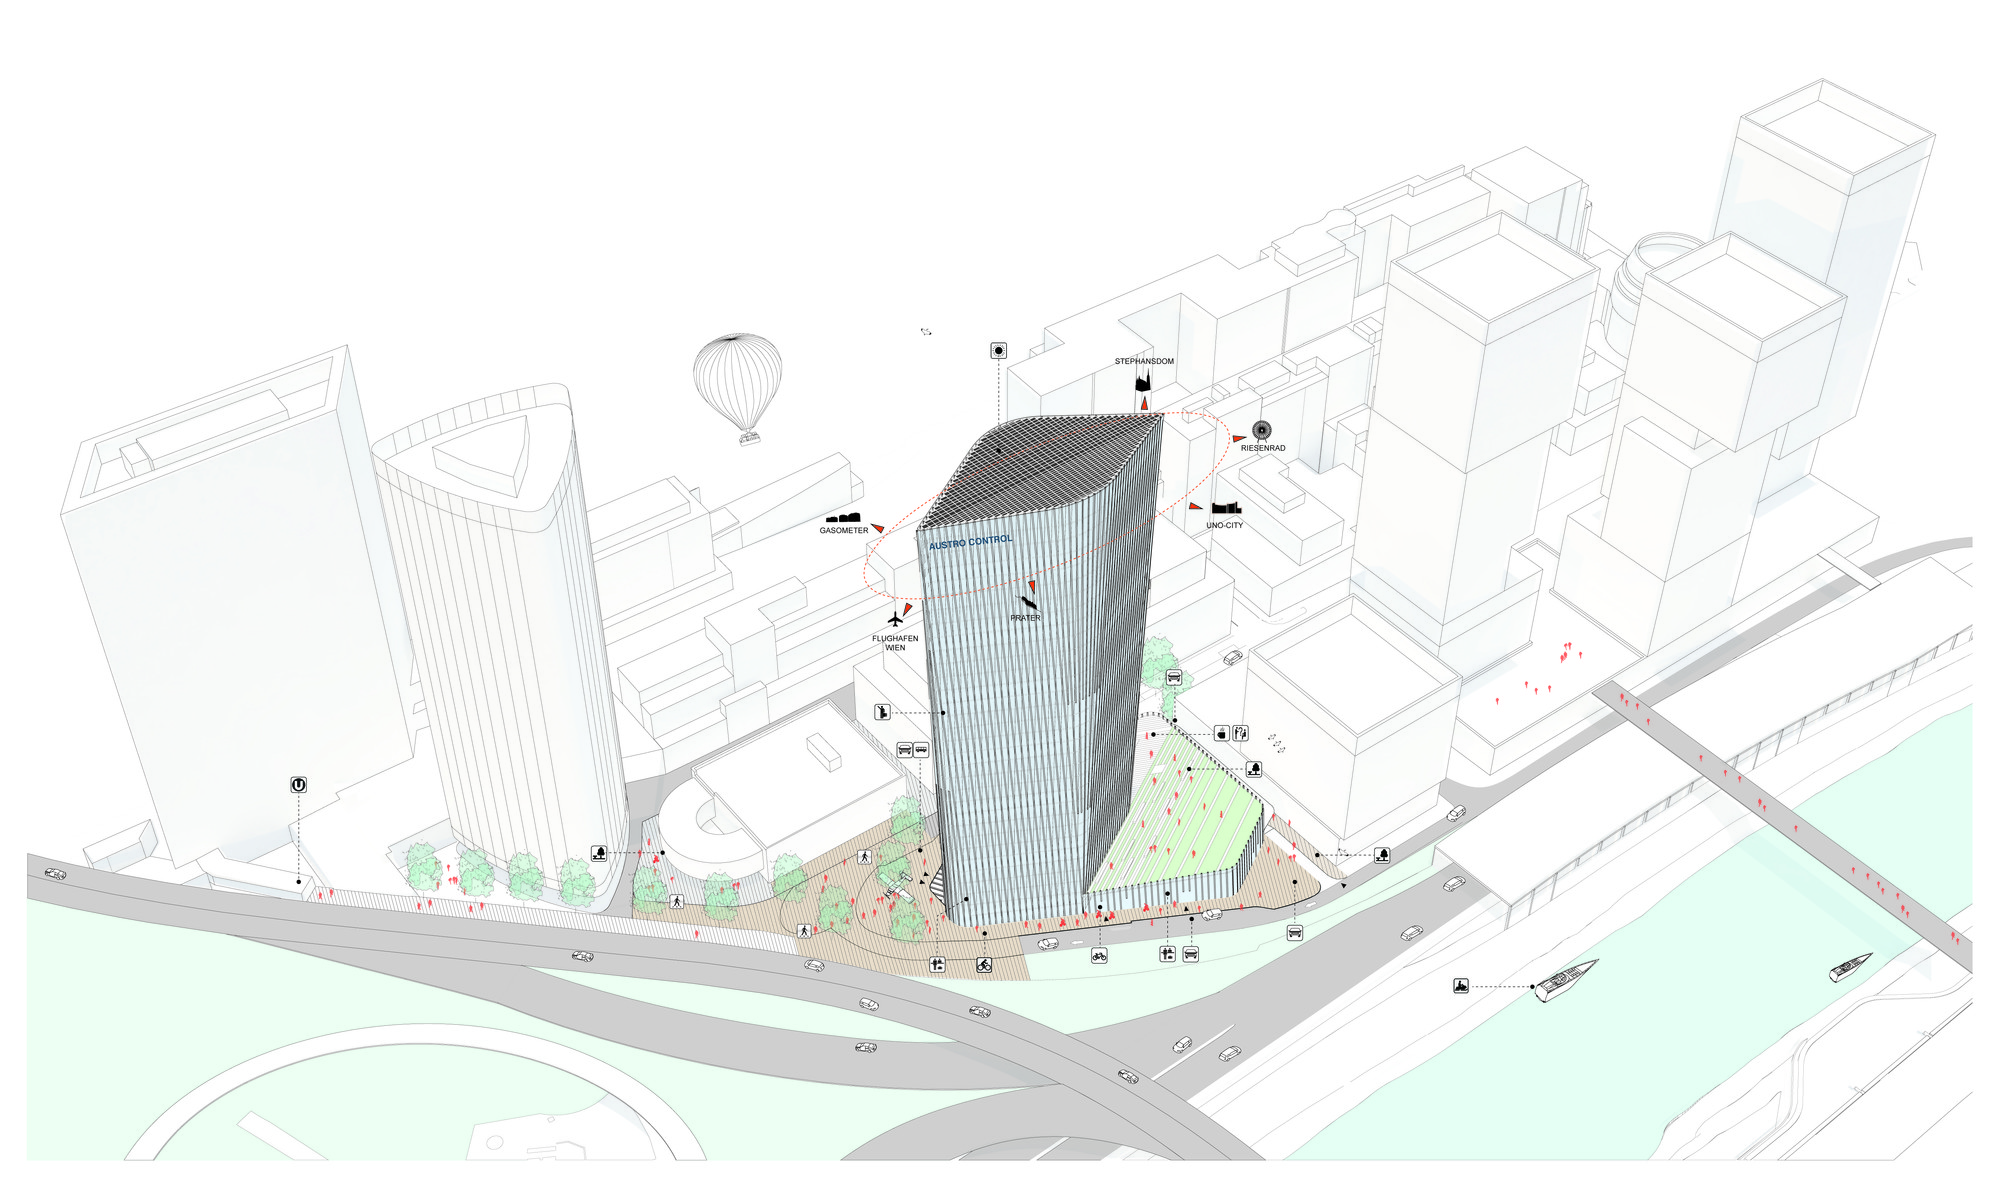 office block design. AZPML And SHARE Selected To Design 115-Meter Viennese Office Tower,© Block